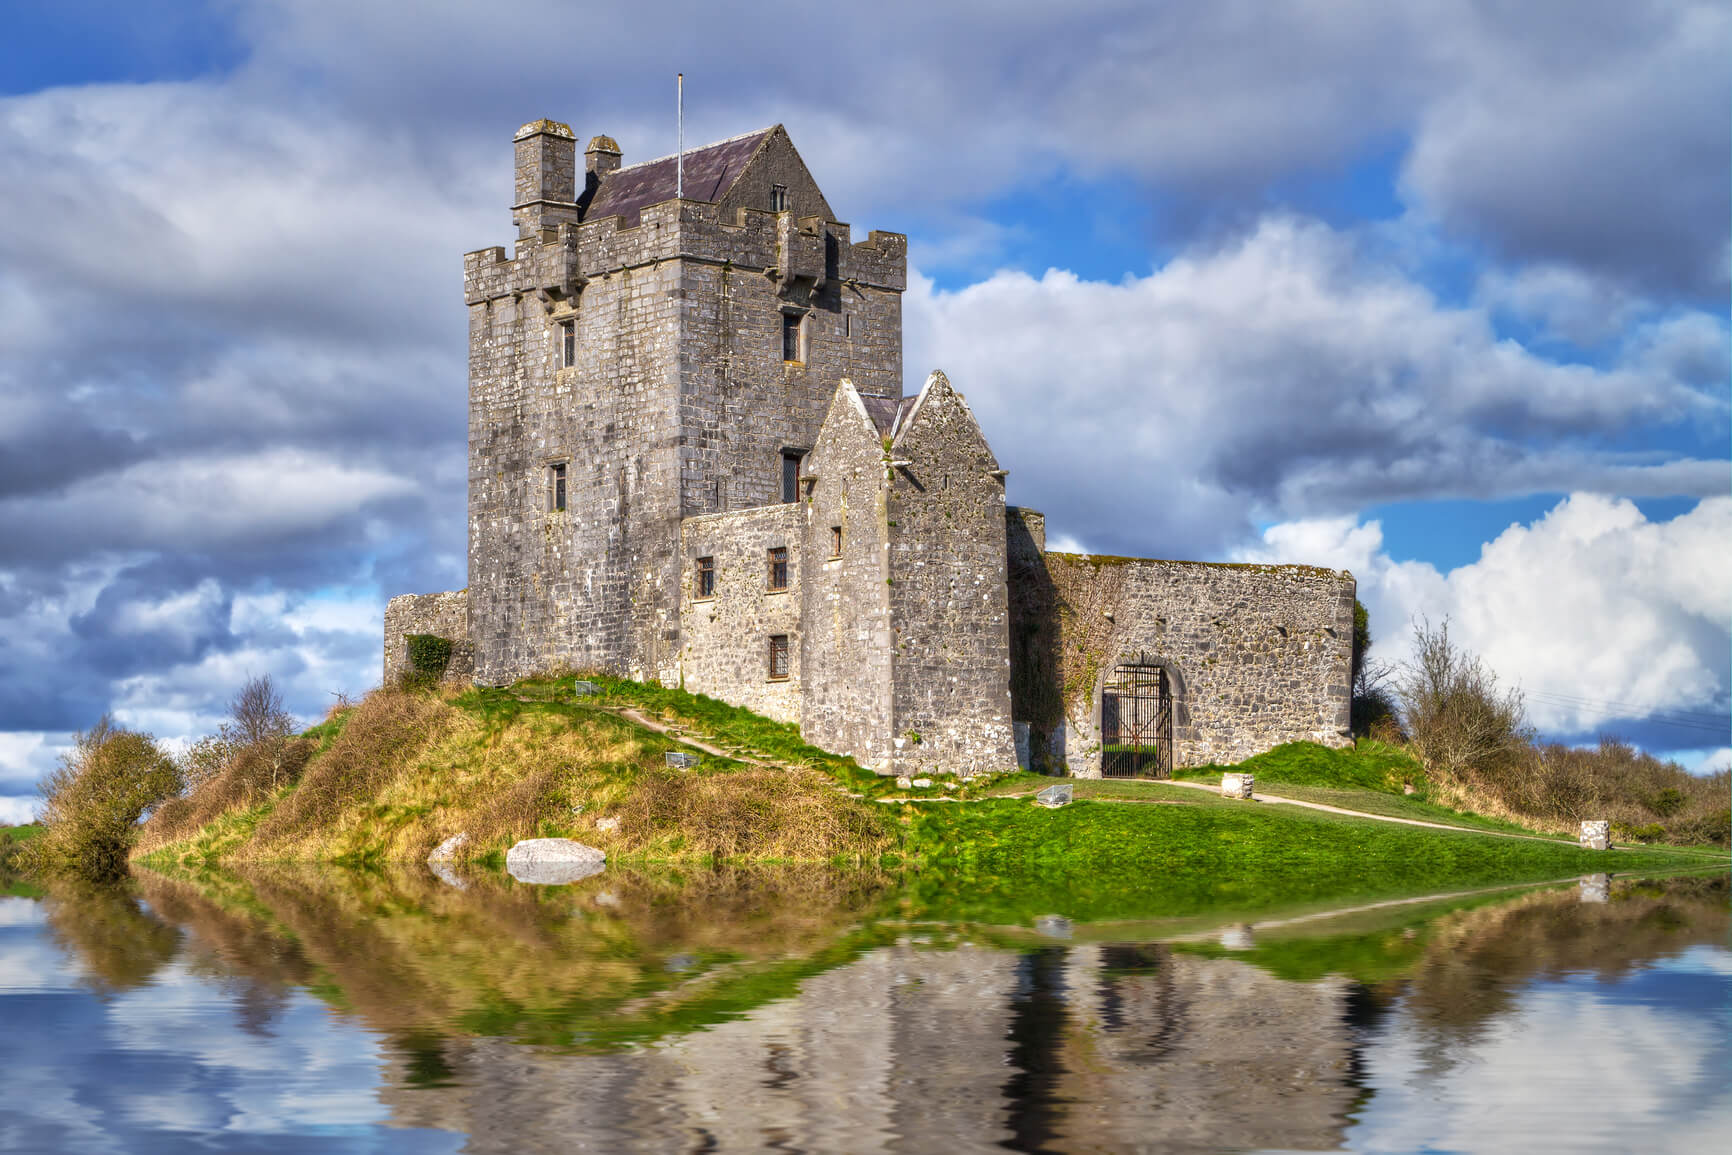 San Francisco to Dublin, Ireland for only $362 roundtrip